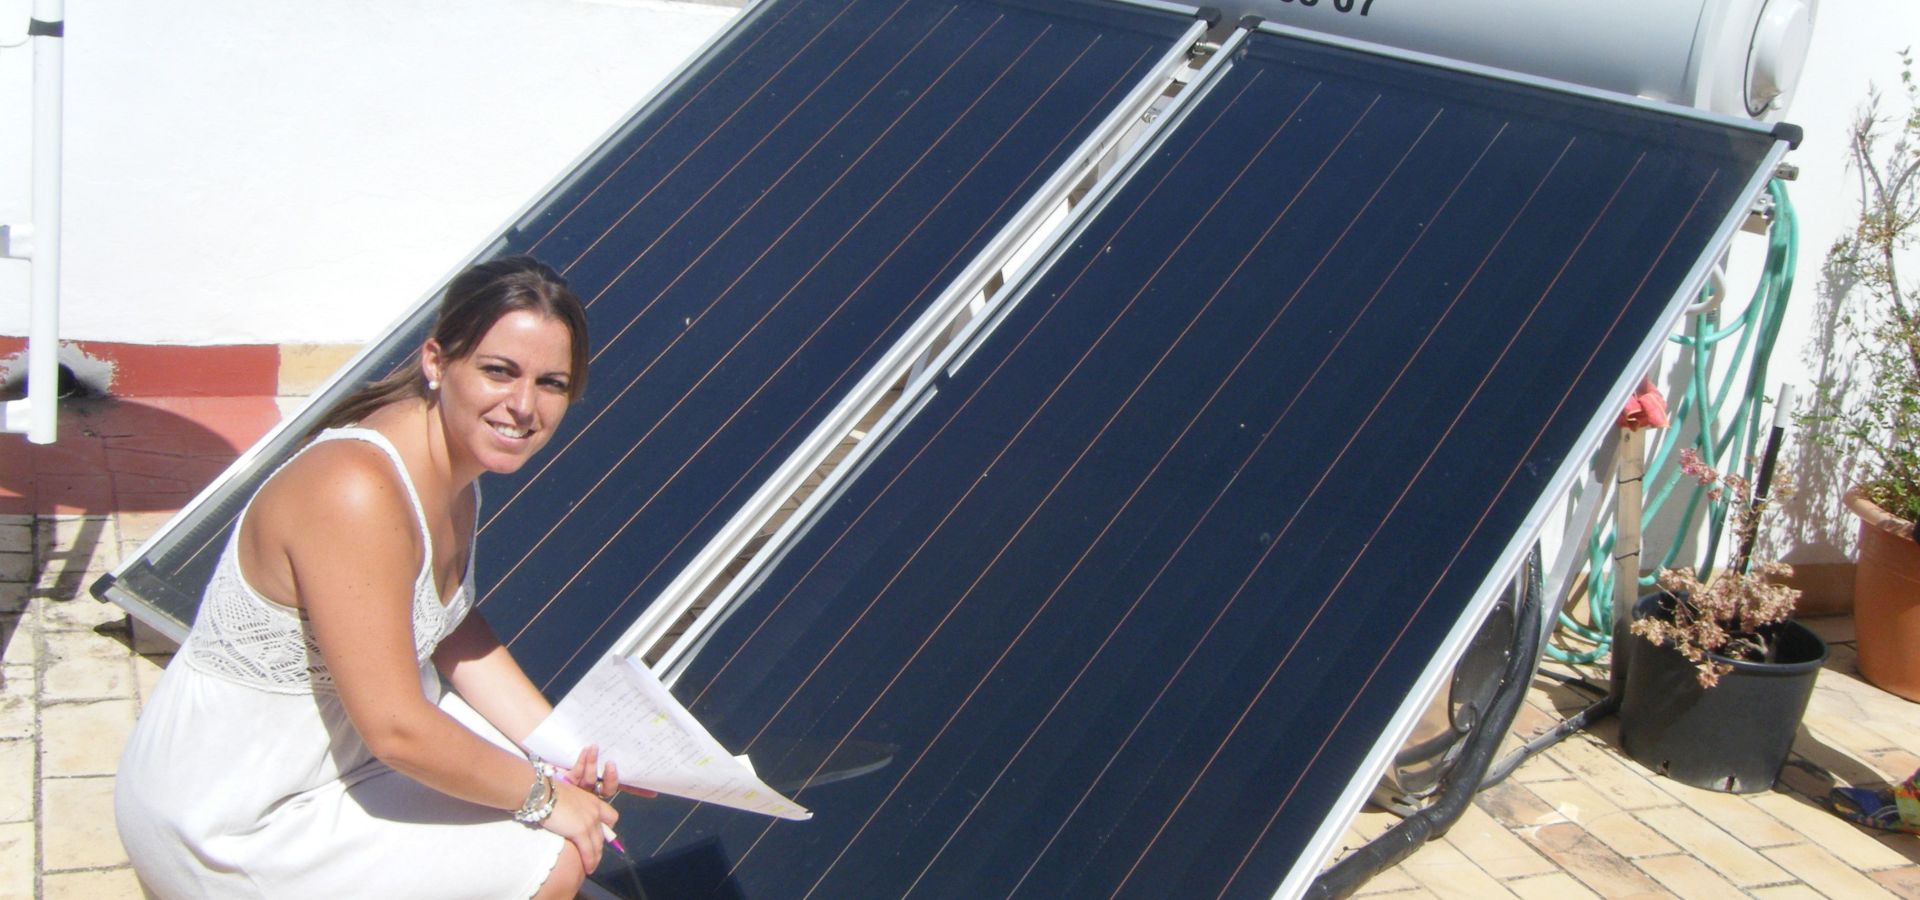 Energy transition and youth employment in Spain and Greece